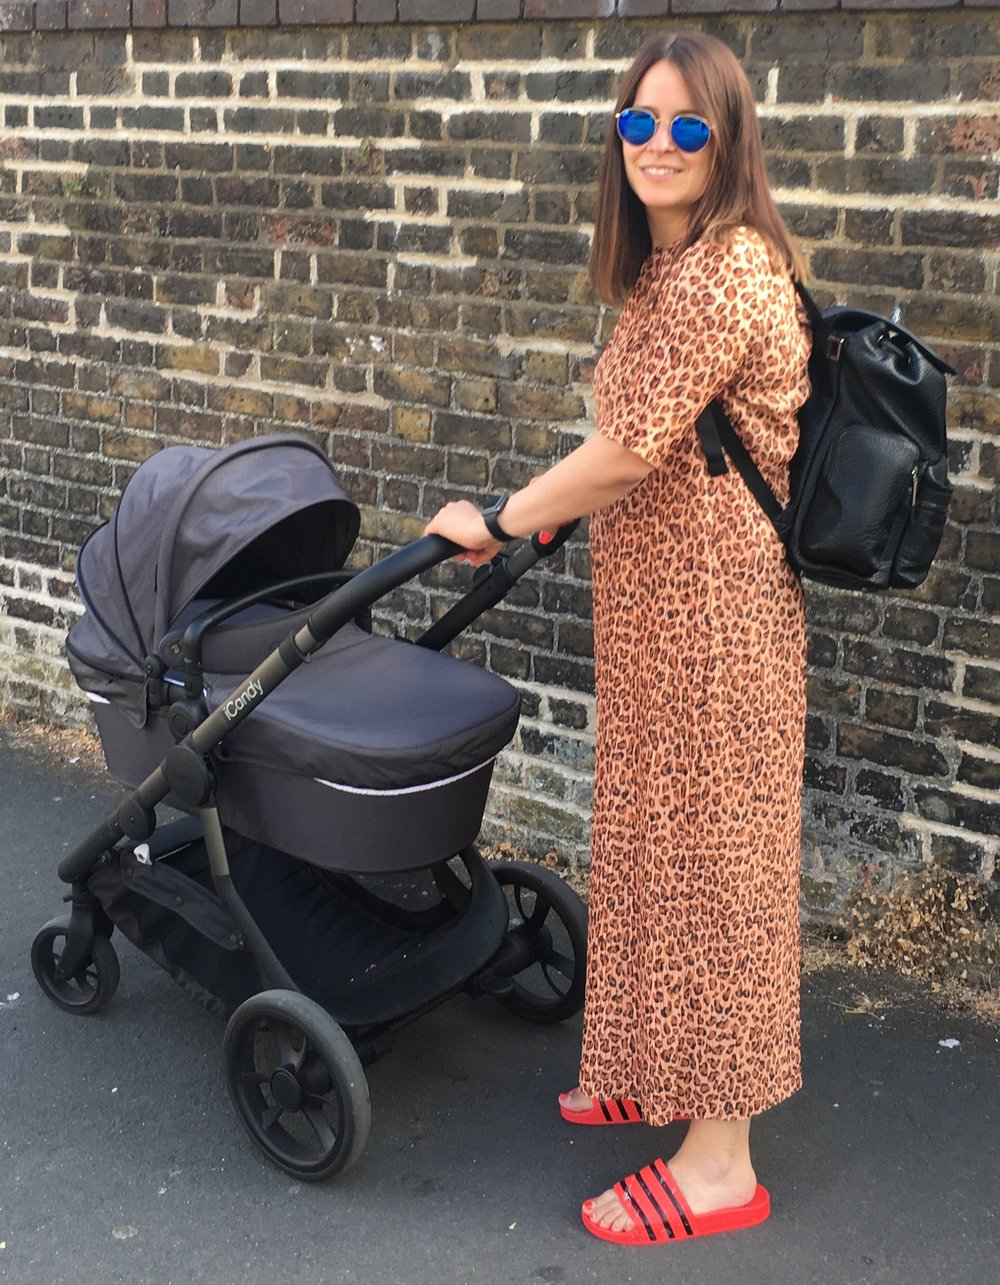 Icandy orange pushchair